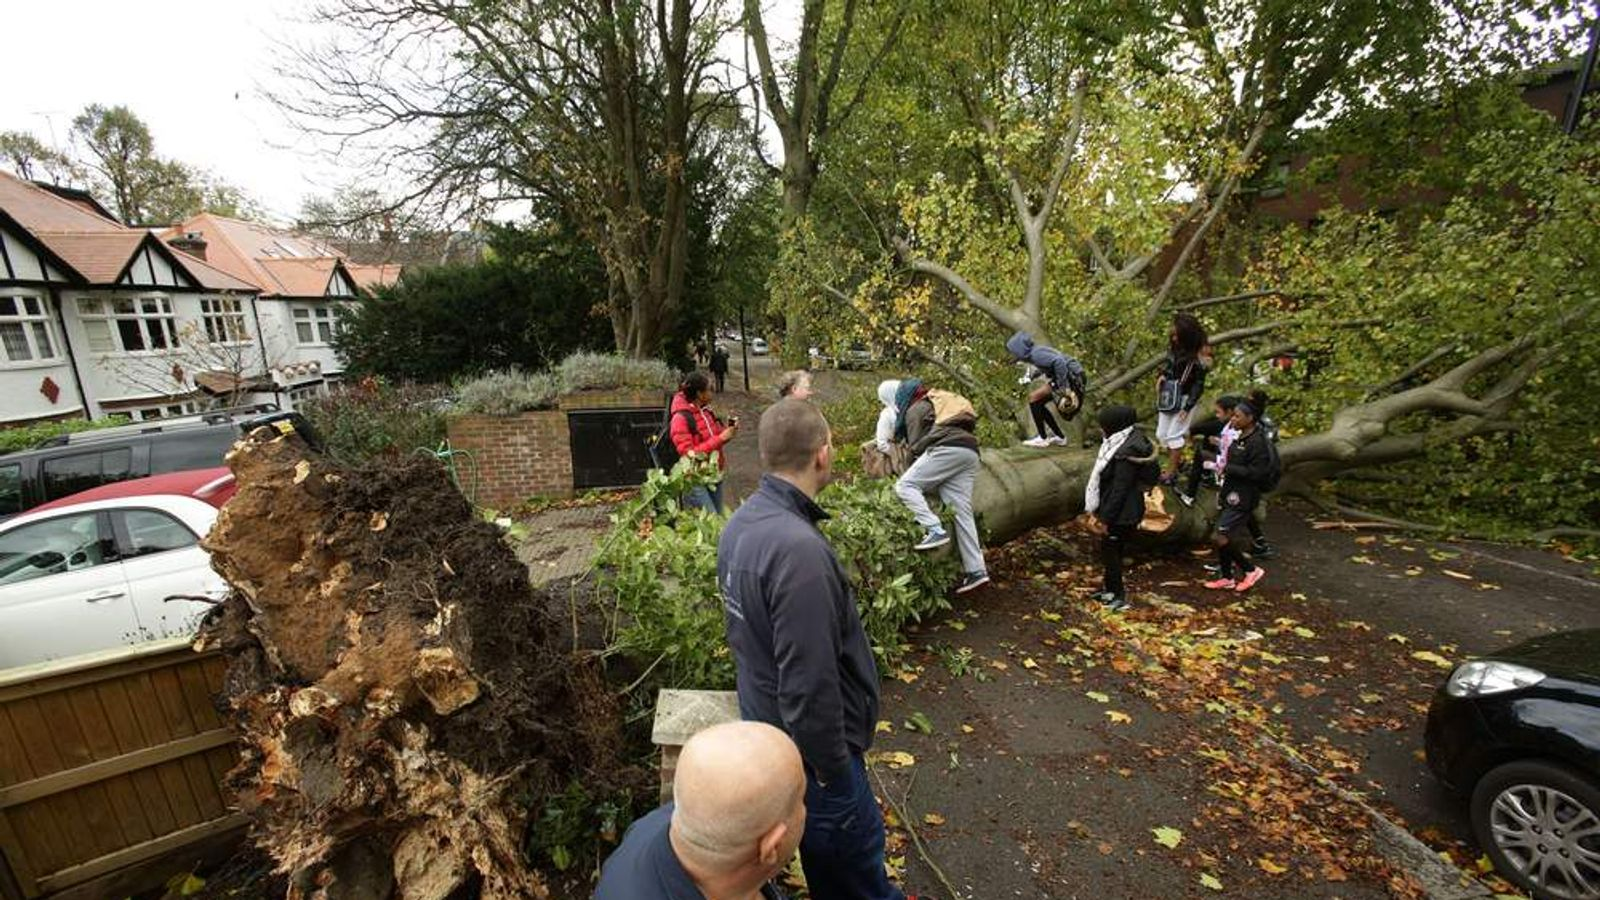 Passers-by climb over a fallen tree lying across the road in Shepherd's Hill, north London